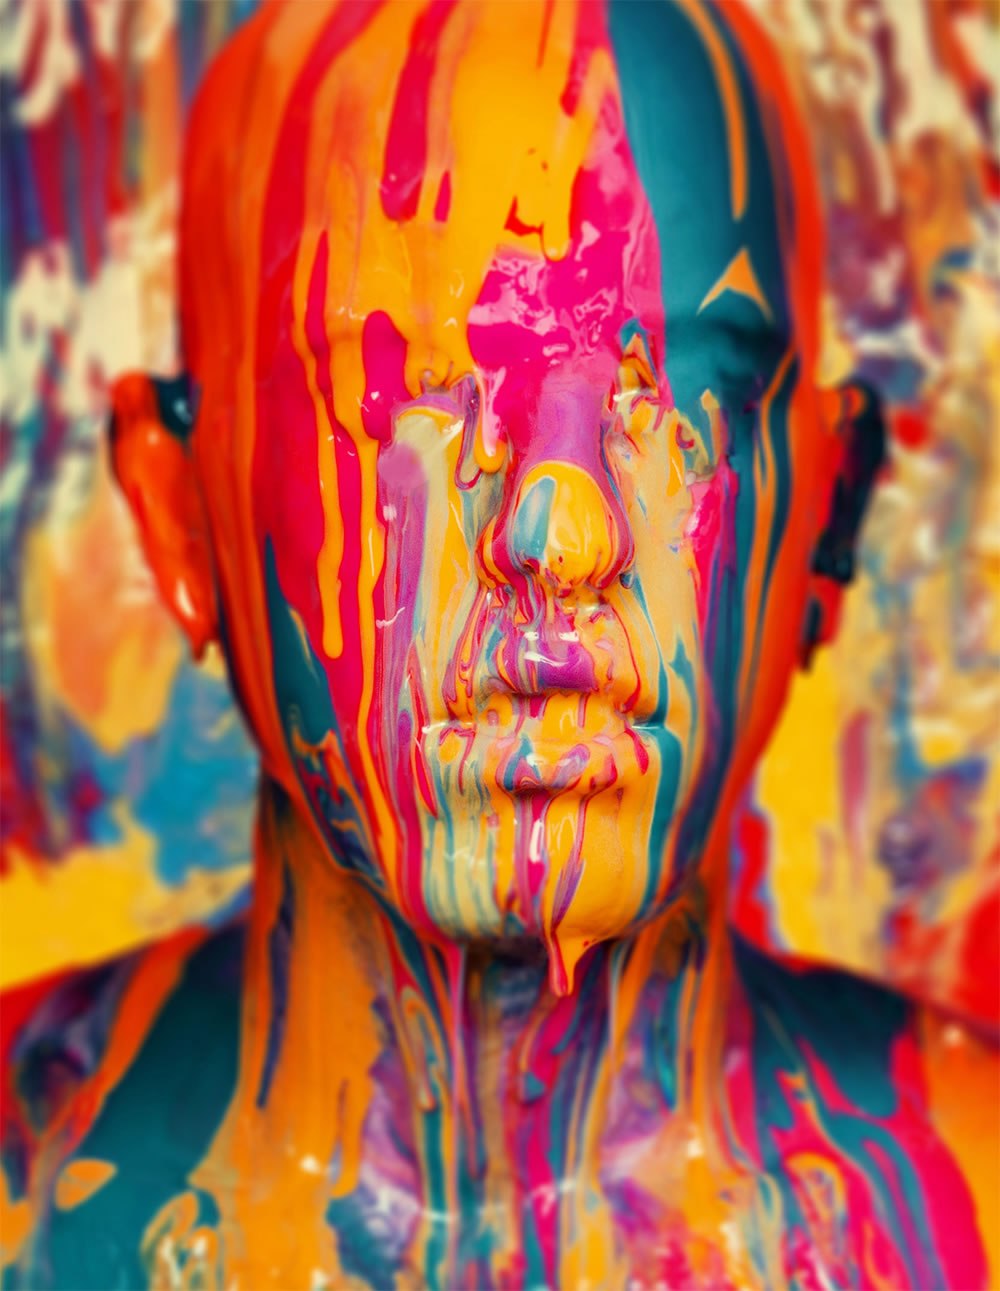 Self-portrait. Colored paint on face by Noam Galai